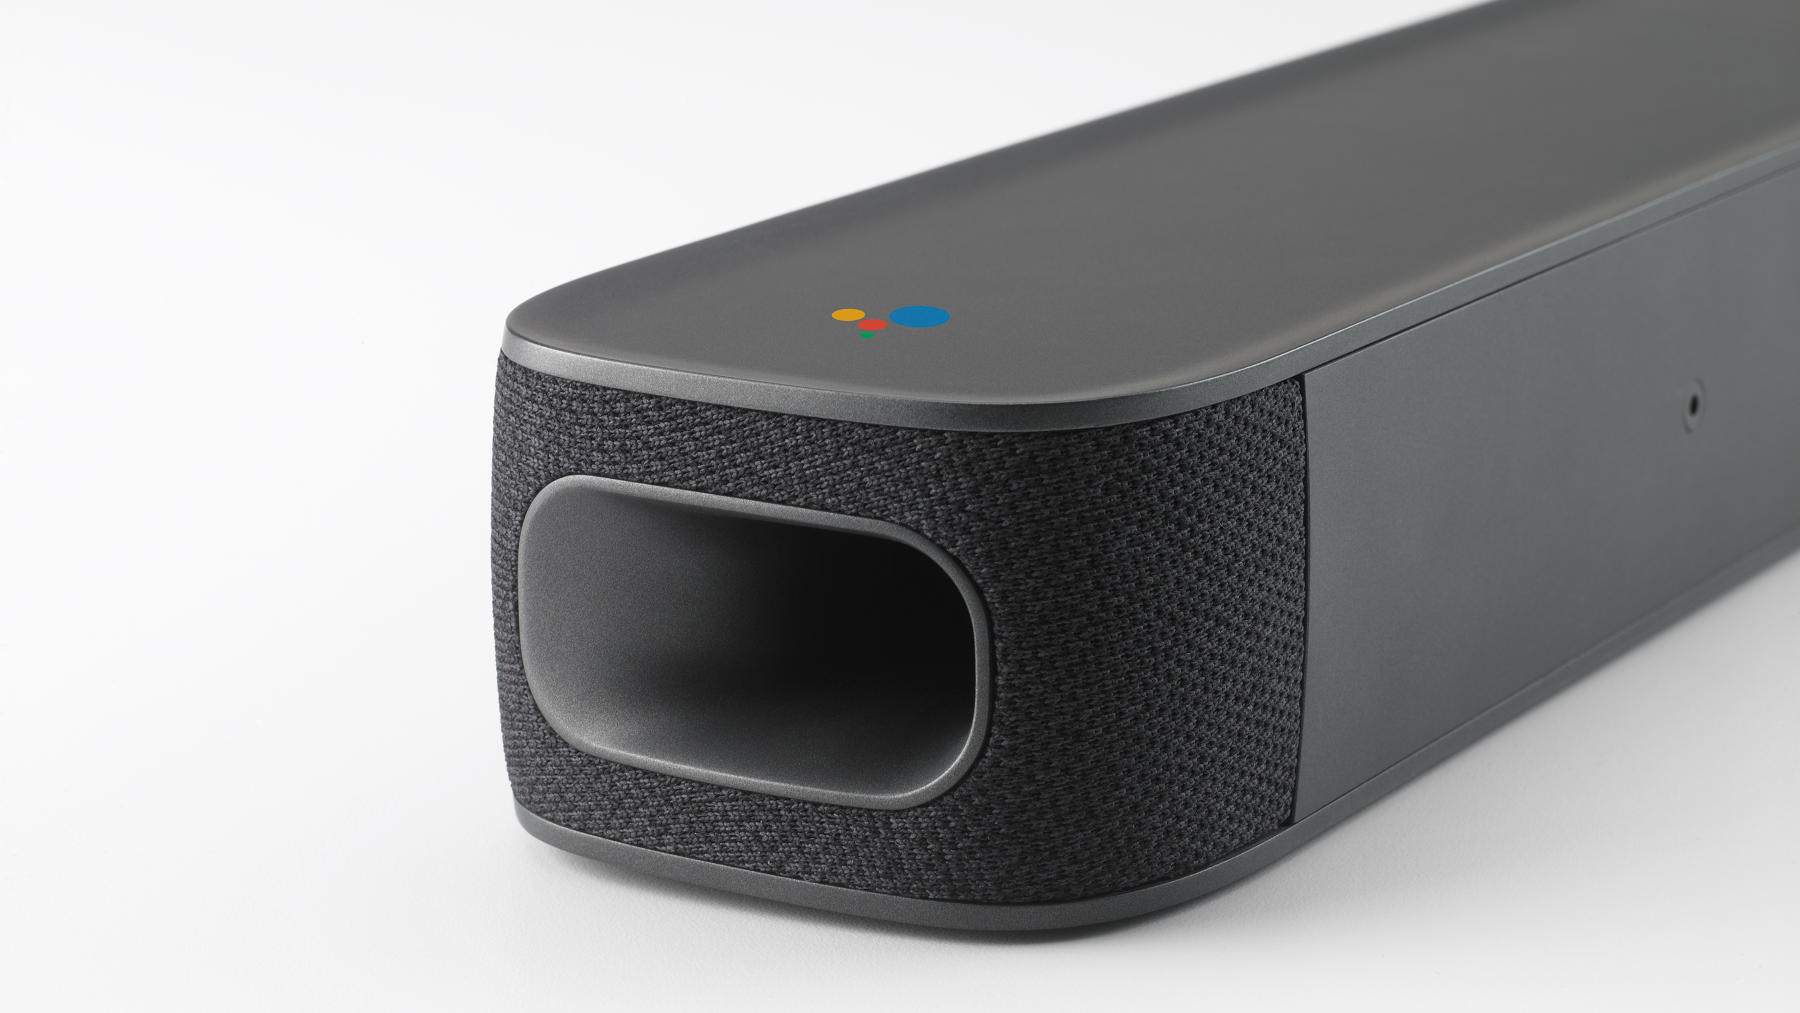 JBL Link Bar, the soundbar with Google Assistant and Android TV